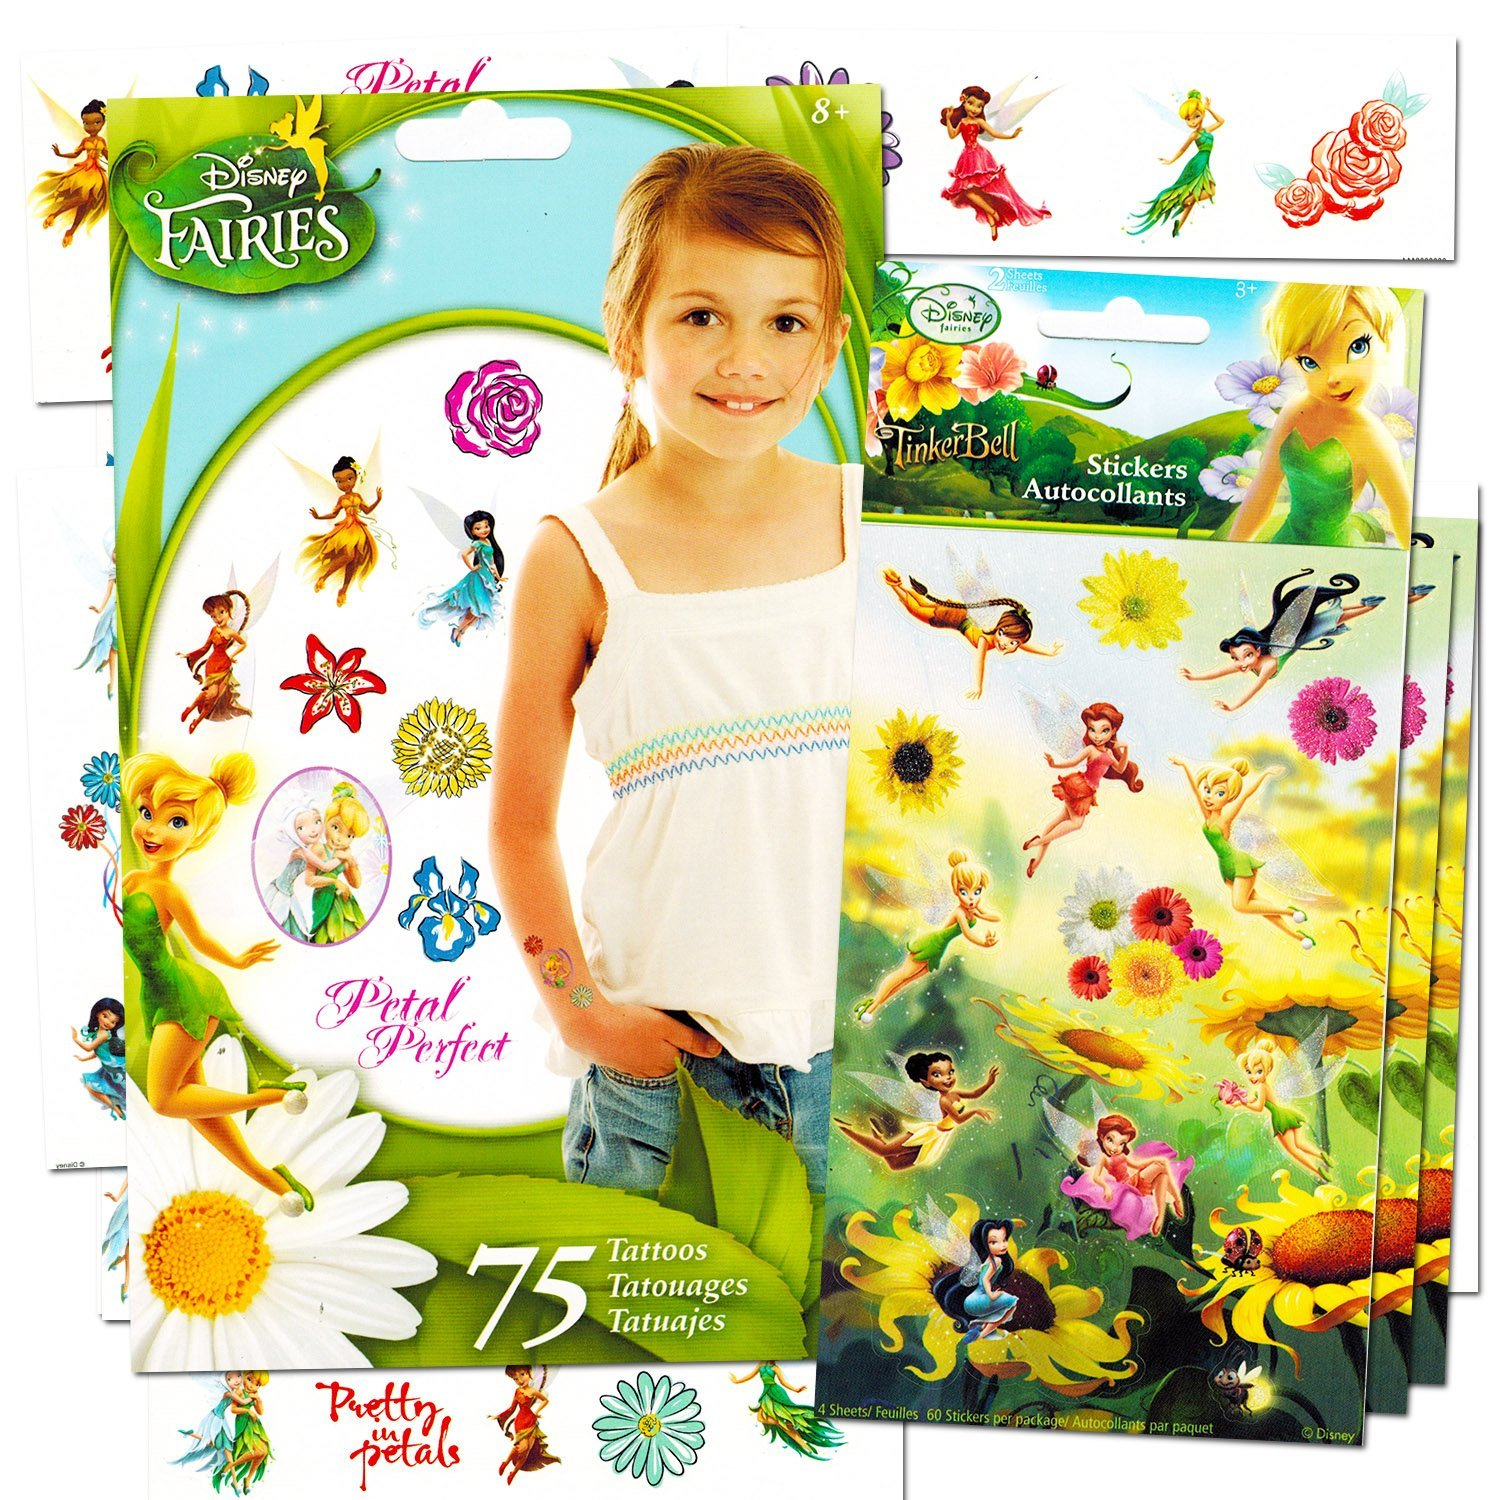 Disney Fairies Stickers and Tattoos Party Favor Pack (120 Stickers & 75 Temporary Tattoos Featuring Tinkerbell)